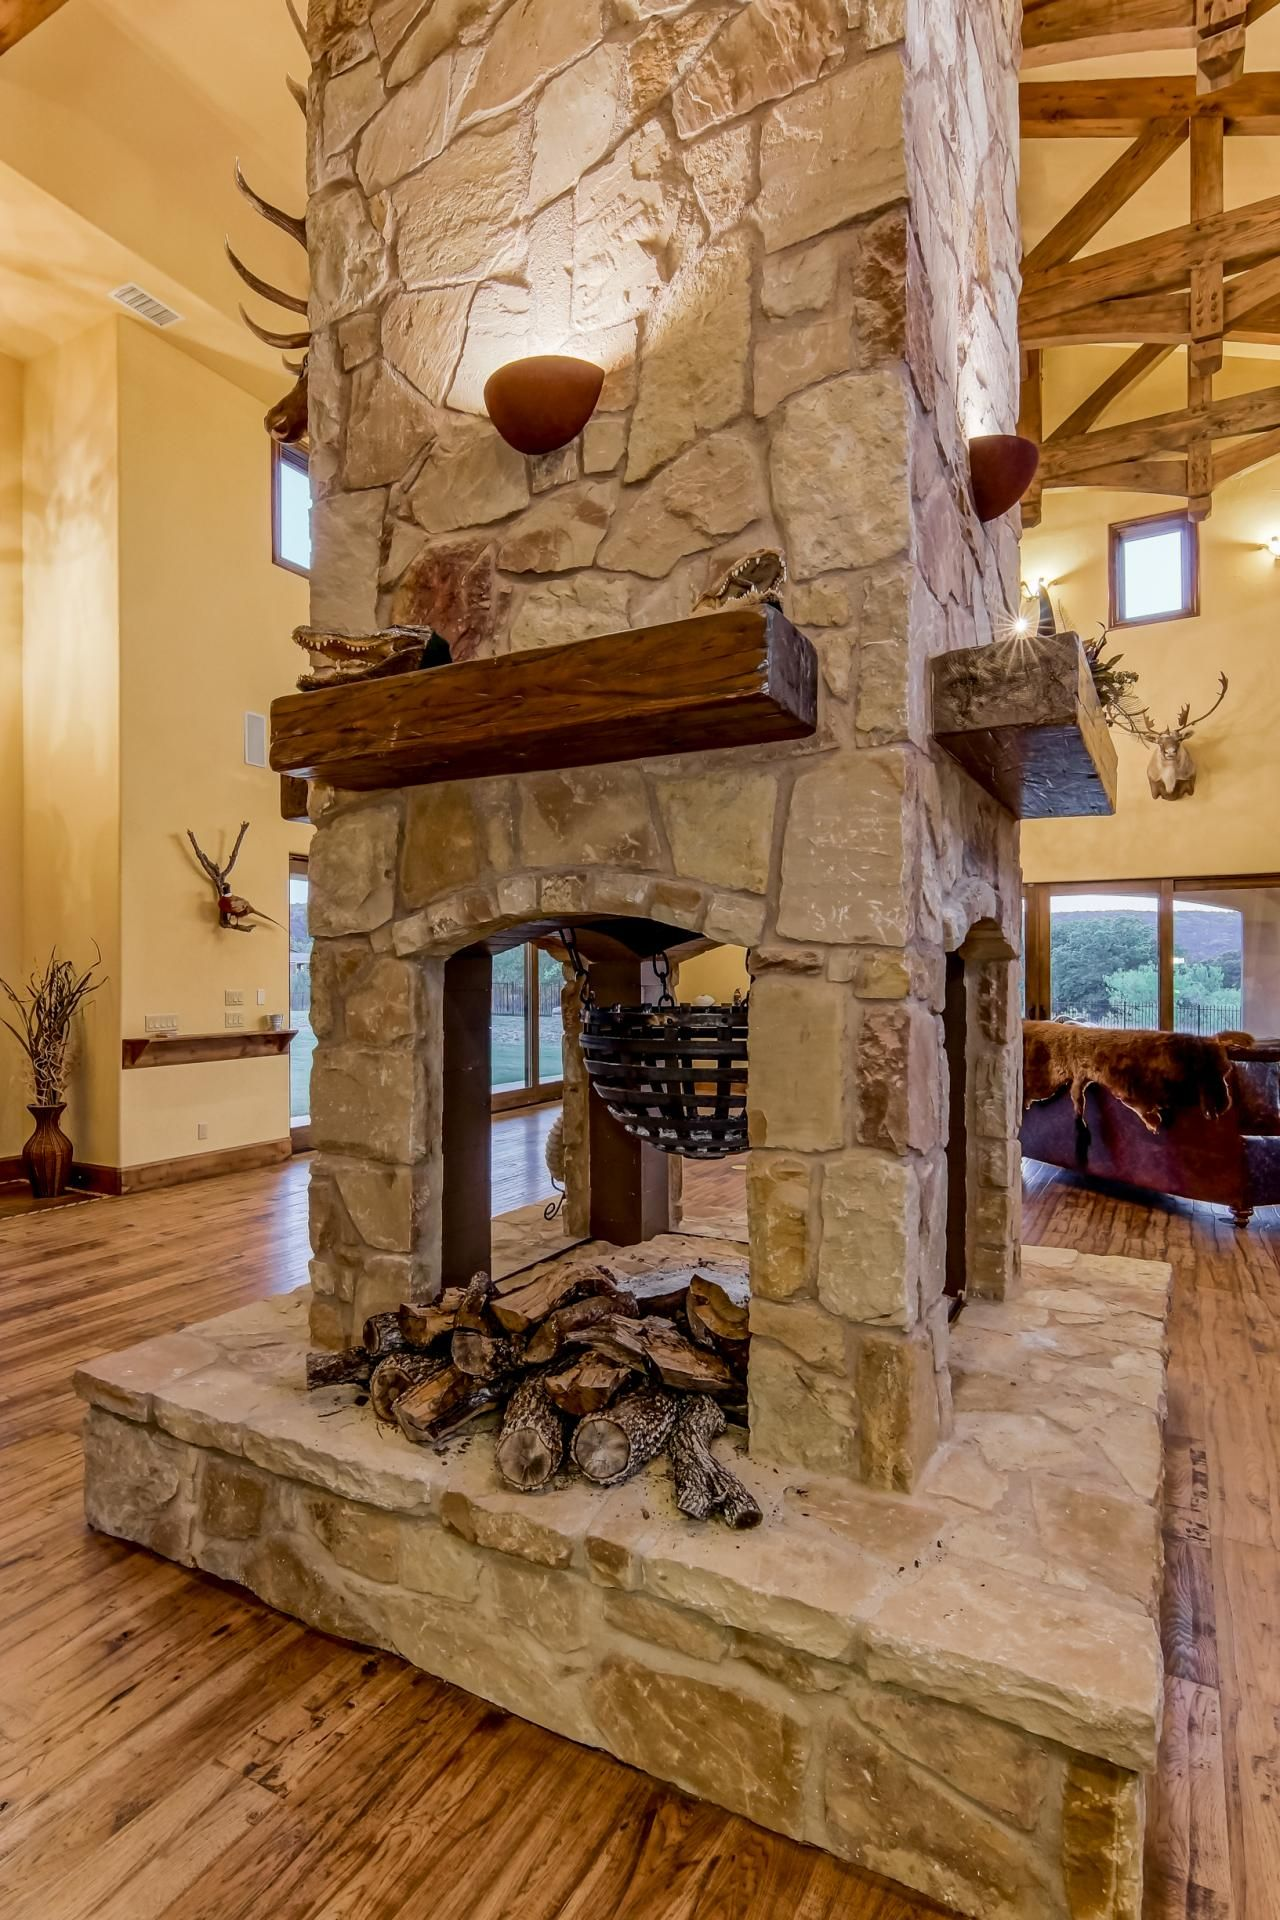 Custom Stone Fireplaces. 3 sided custom fireplaces  Google Search game room ideas